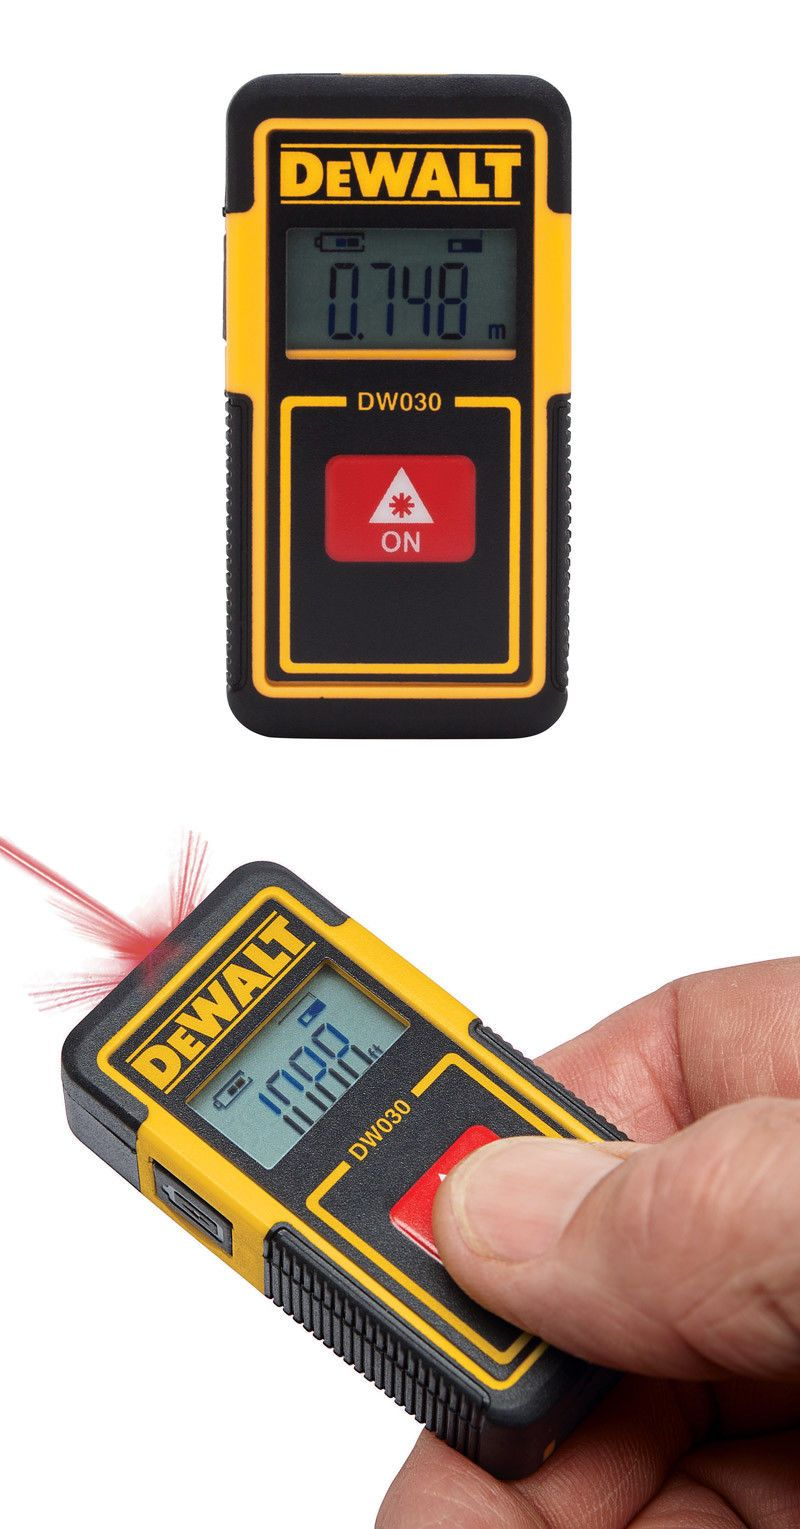 New Dewalt Pocket Laser Tape Measure Dw030pl 885911522960 Ebay Dewalt Measuring Tools Dewalt Tools